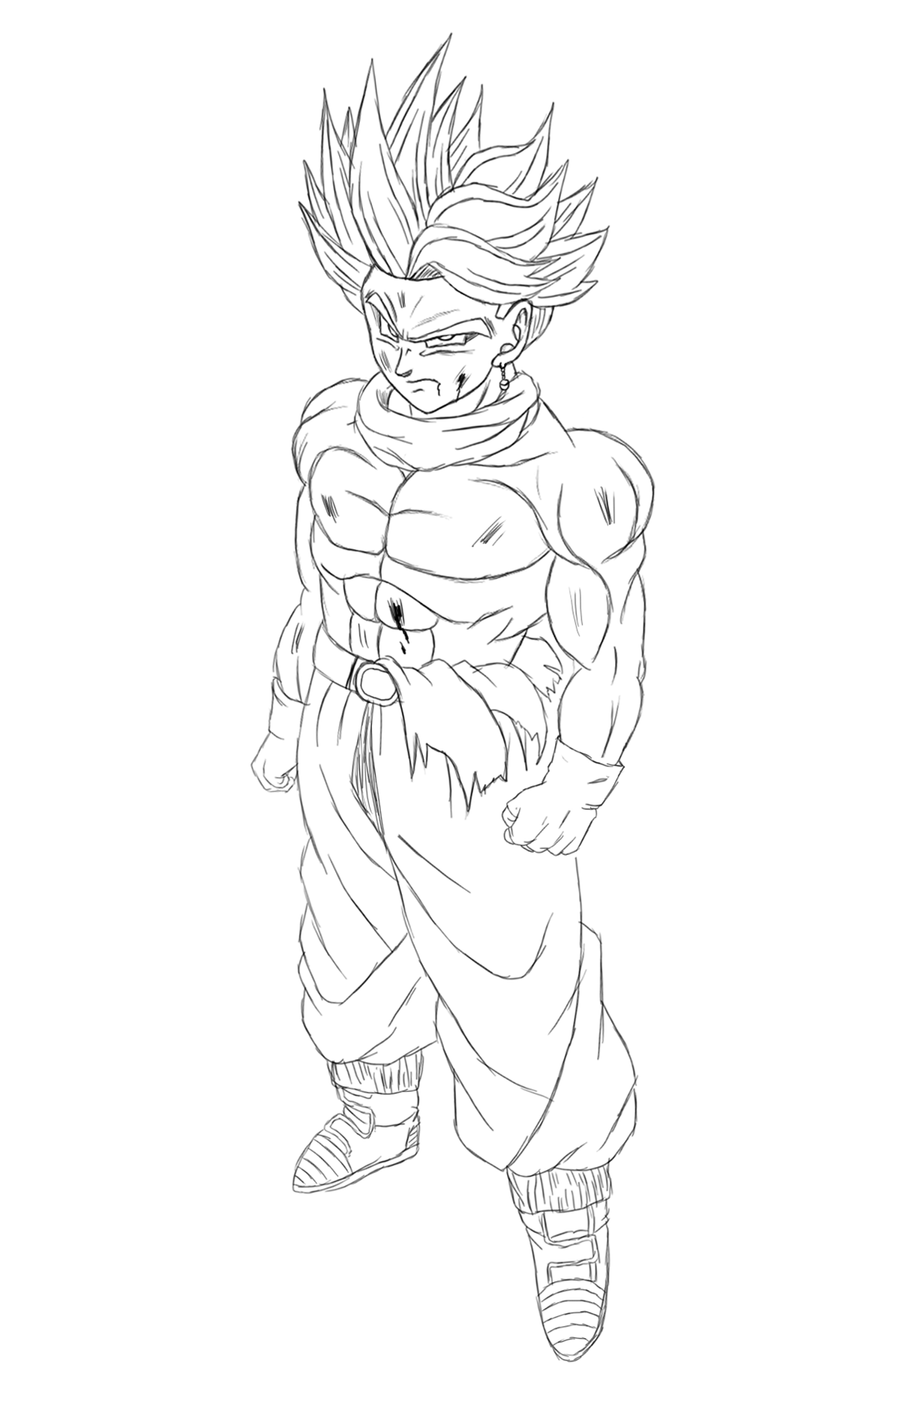 Easy Kid Vegeta Non Color Drawings Front View